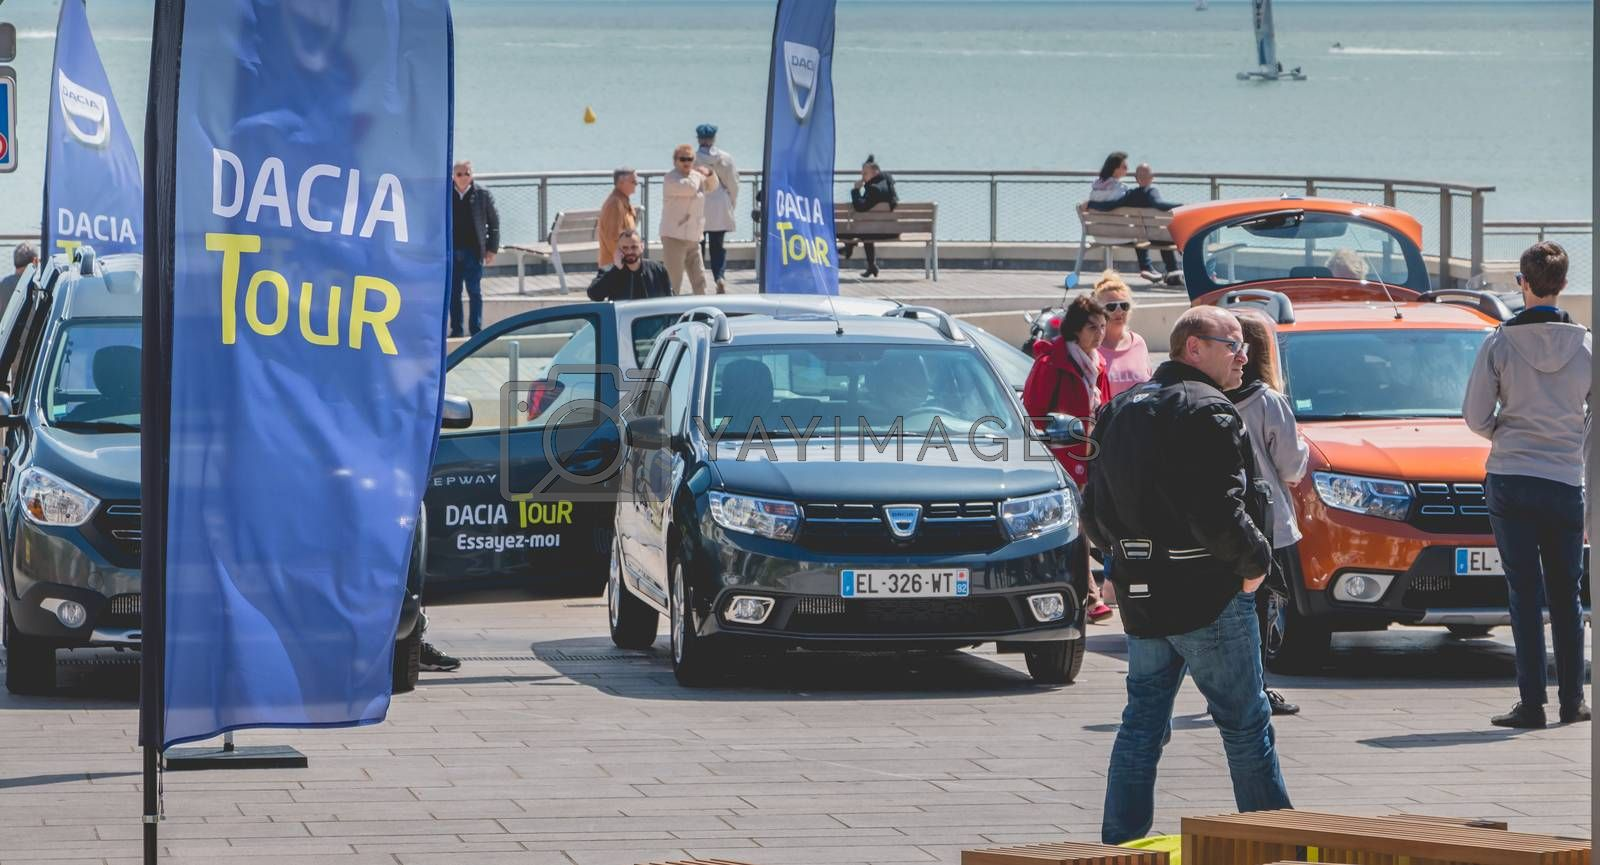 Sables d Olonnes, France - May 07, 2017 : Dacia Tour 2017 is a commercial operation organized by the car builder in order to present its cars throughout France - General plan of the event